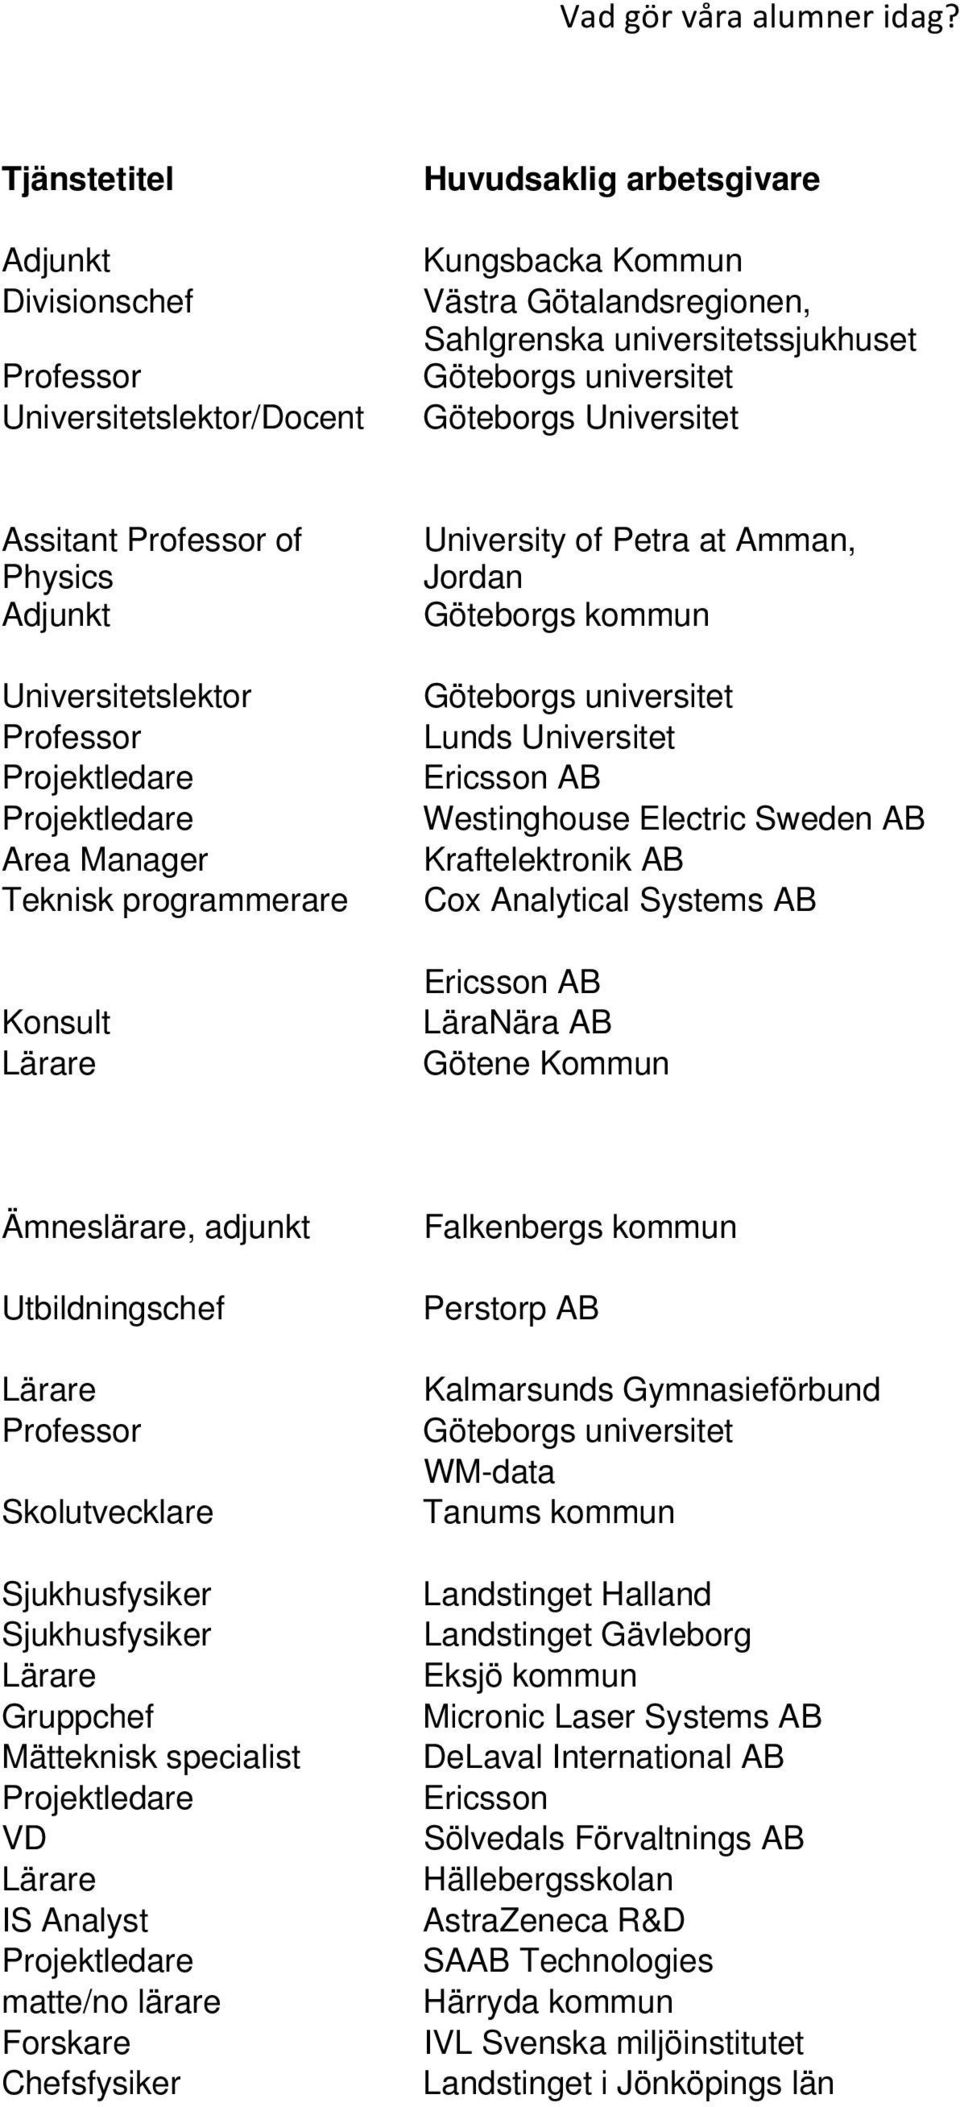 Manager Teknisk programmerare University of Petra at Amman, Jordan Göteborgs kommun Lunds Universitet Westinghouse Electric Sweden AB Kraftelektronik AB Cox Analytical Systems AB LäraNära AB Götene